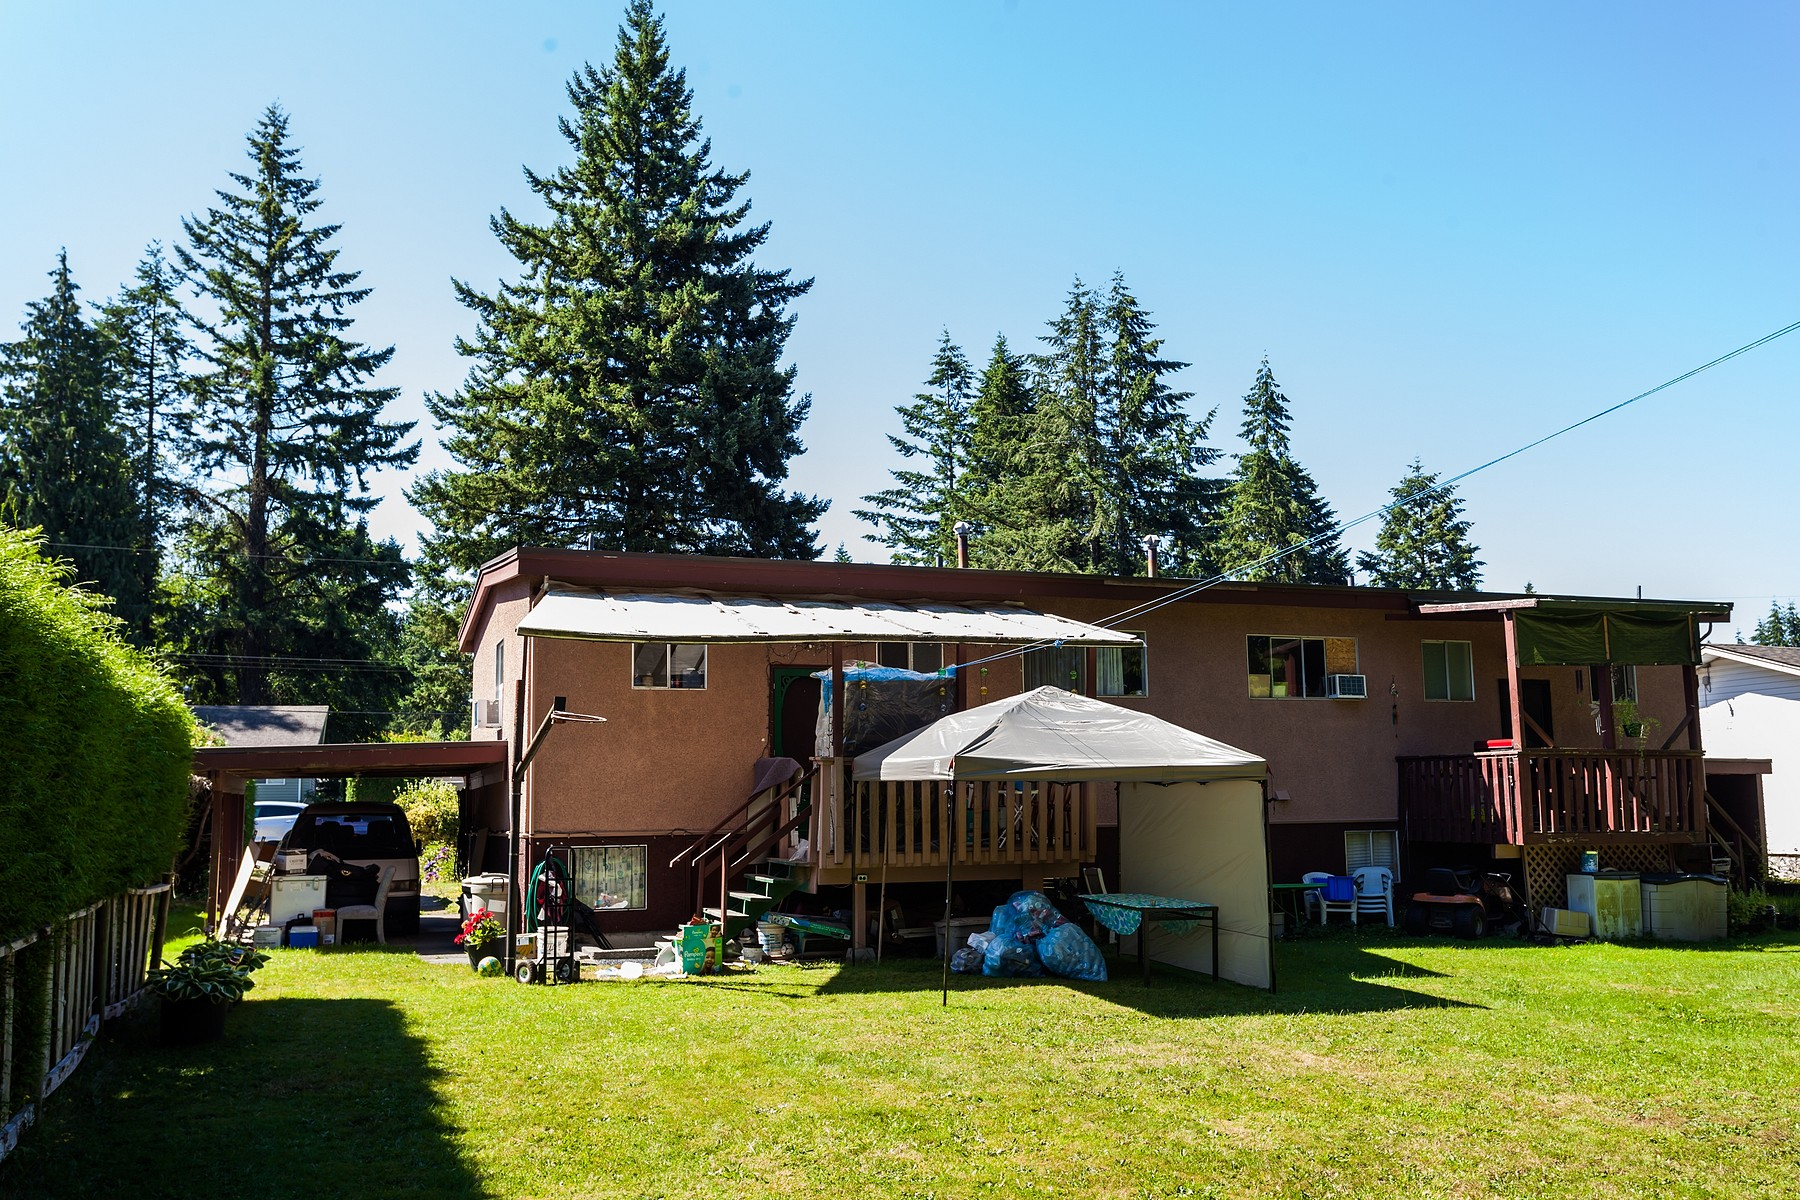 Additional photo for property listing at Abbotsford, Fraser Valley 34281-34283 Redwood Avenue Abbotsford, British Columbia V2S 2T6 Canada